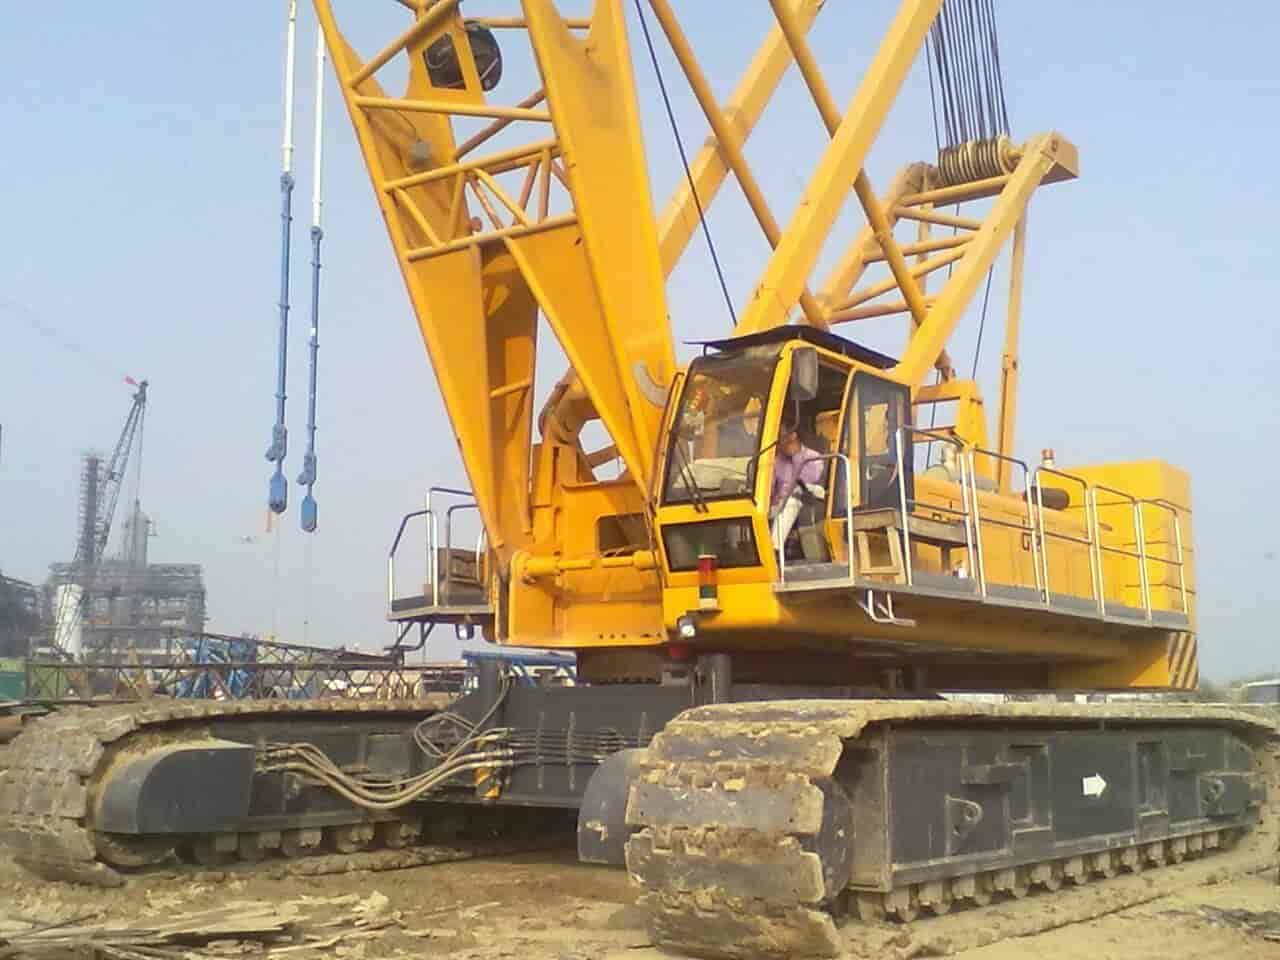 G R Infrastructure Pvt Ltd, Worli - Cranes On Hire in Mumbai